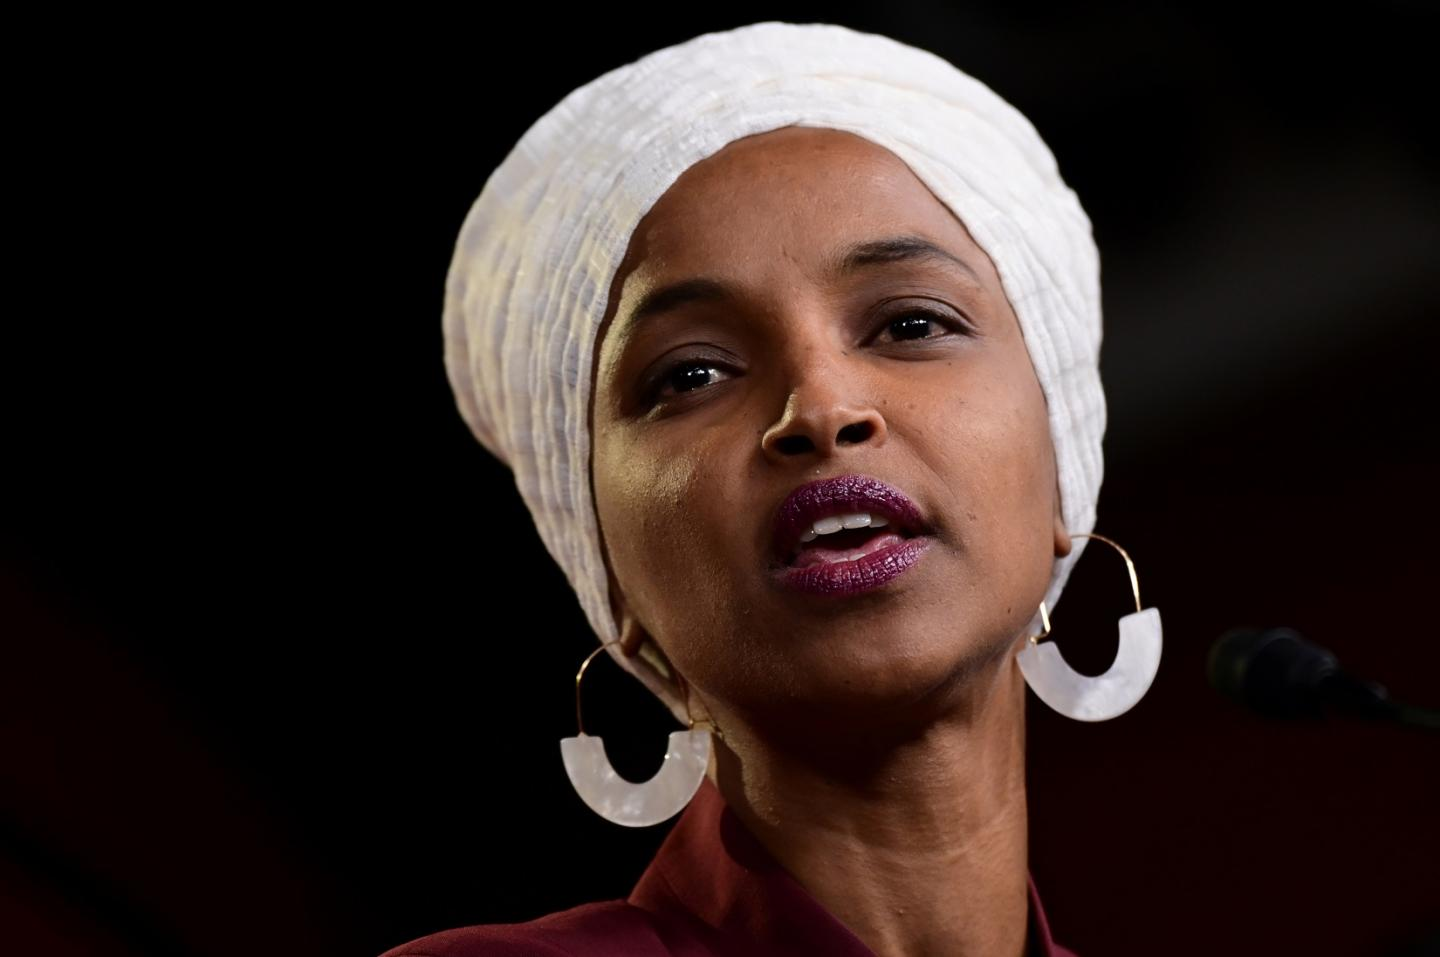 Voice Of America Ignores Reasons For Trump's Criticism Of Rep. Ilhan Omar